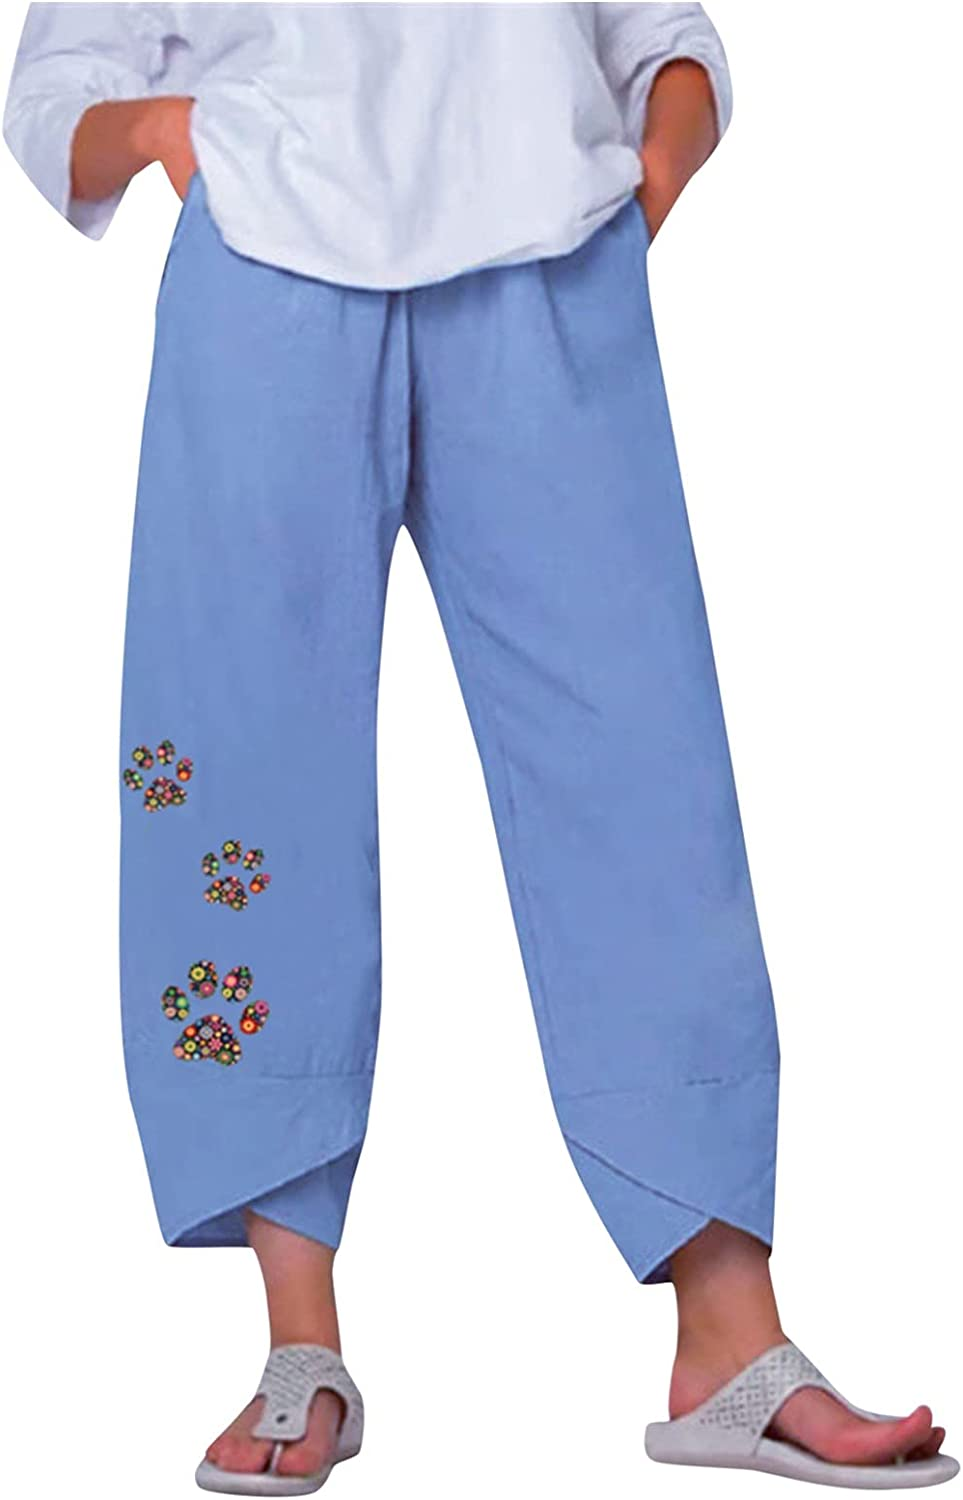 Outlet sale feature 2021 spring and summer new Wabtum Summer Pants for Women Cotton Lin Casual Women's Printing